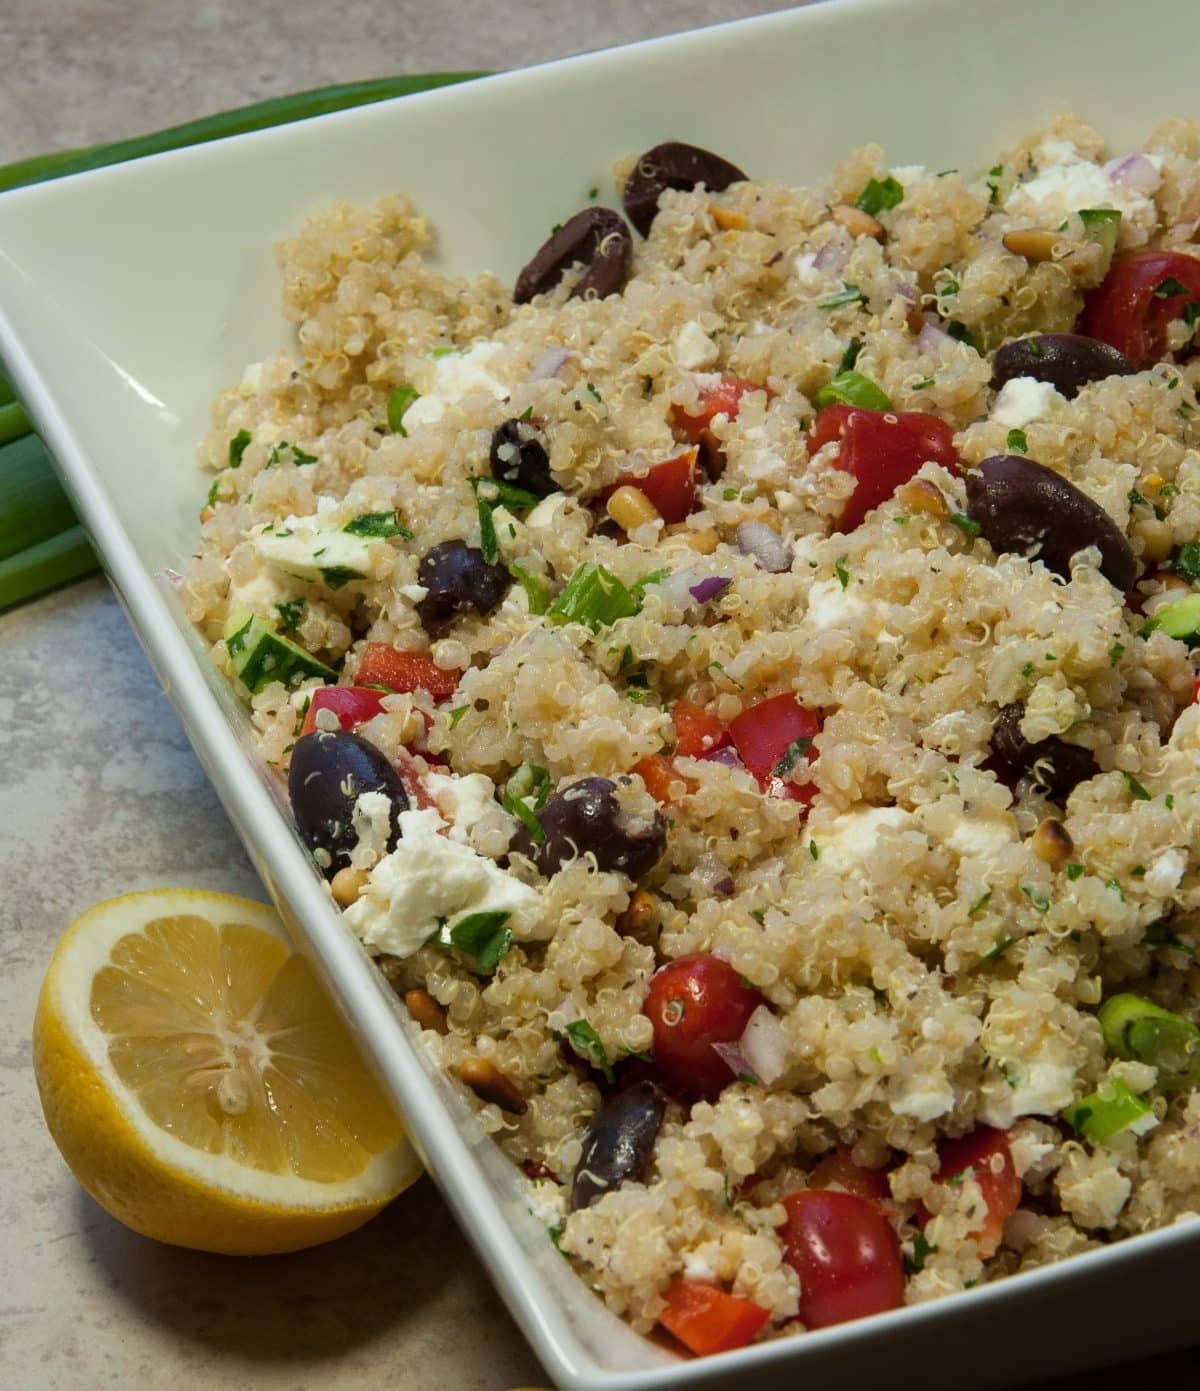 Greek Quinoa Salad - Feasting not Fasting